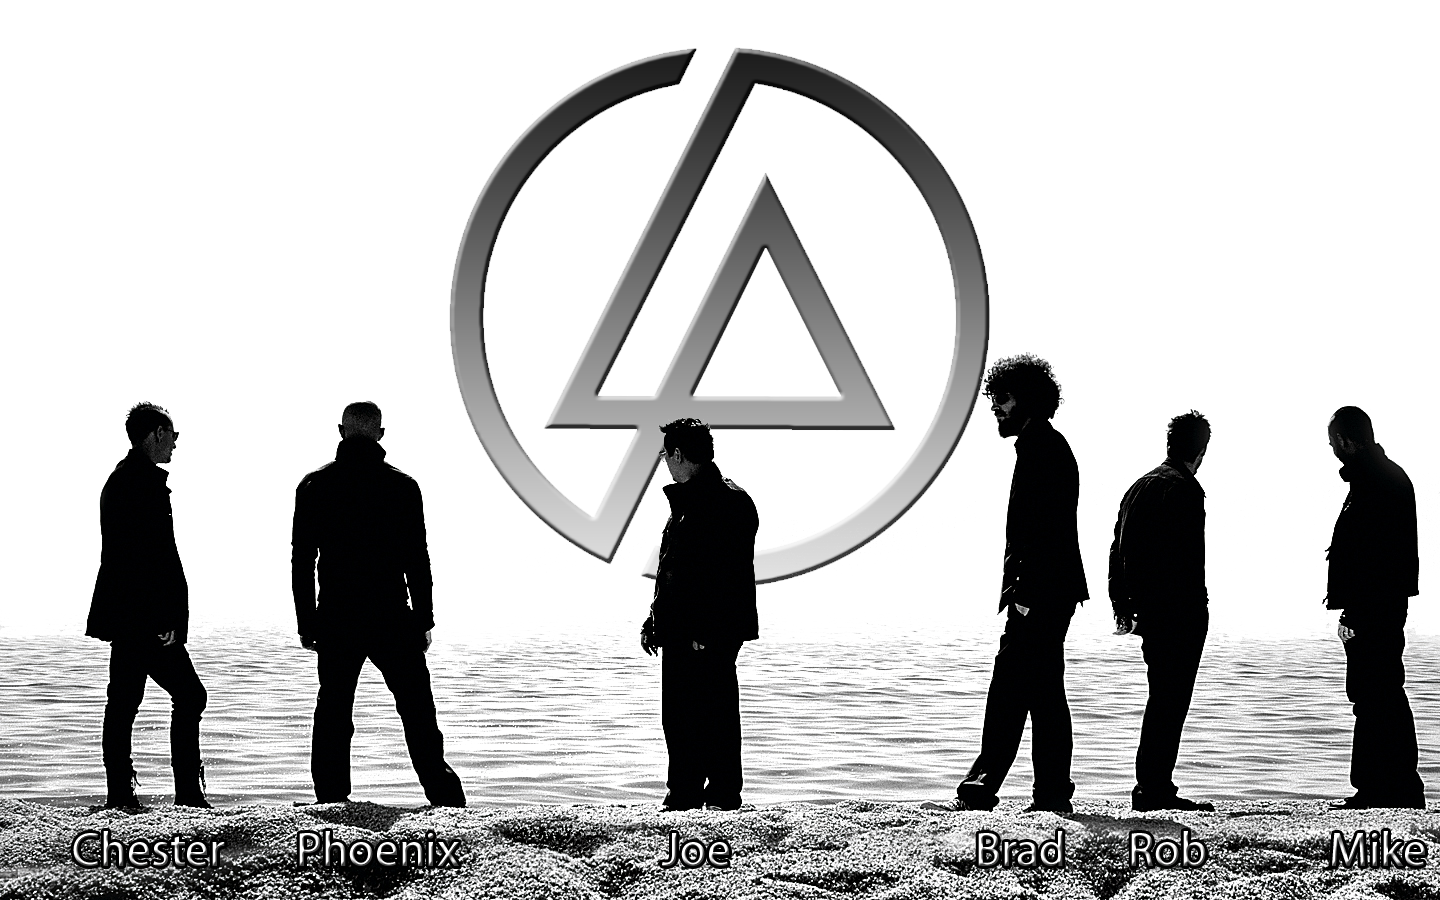 Linkin Park Wallpaper Hd 2014 For Background D #6673 Wallpaper .